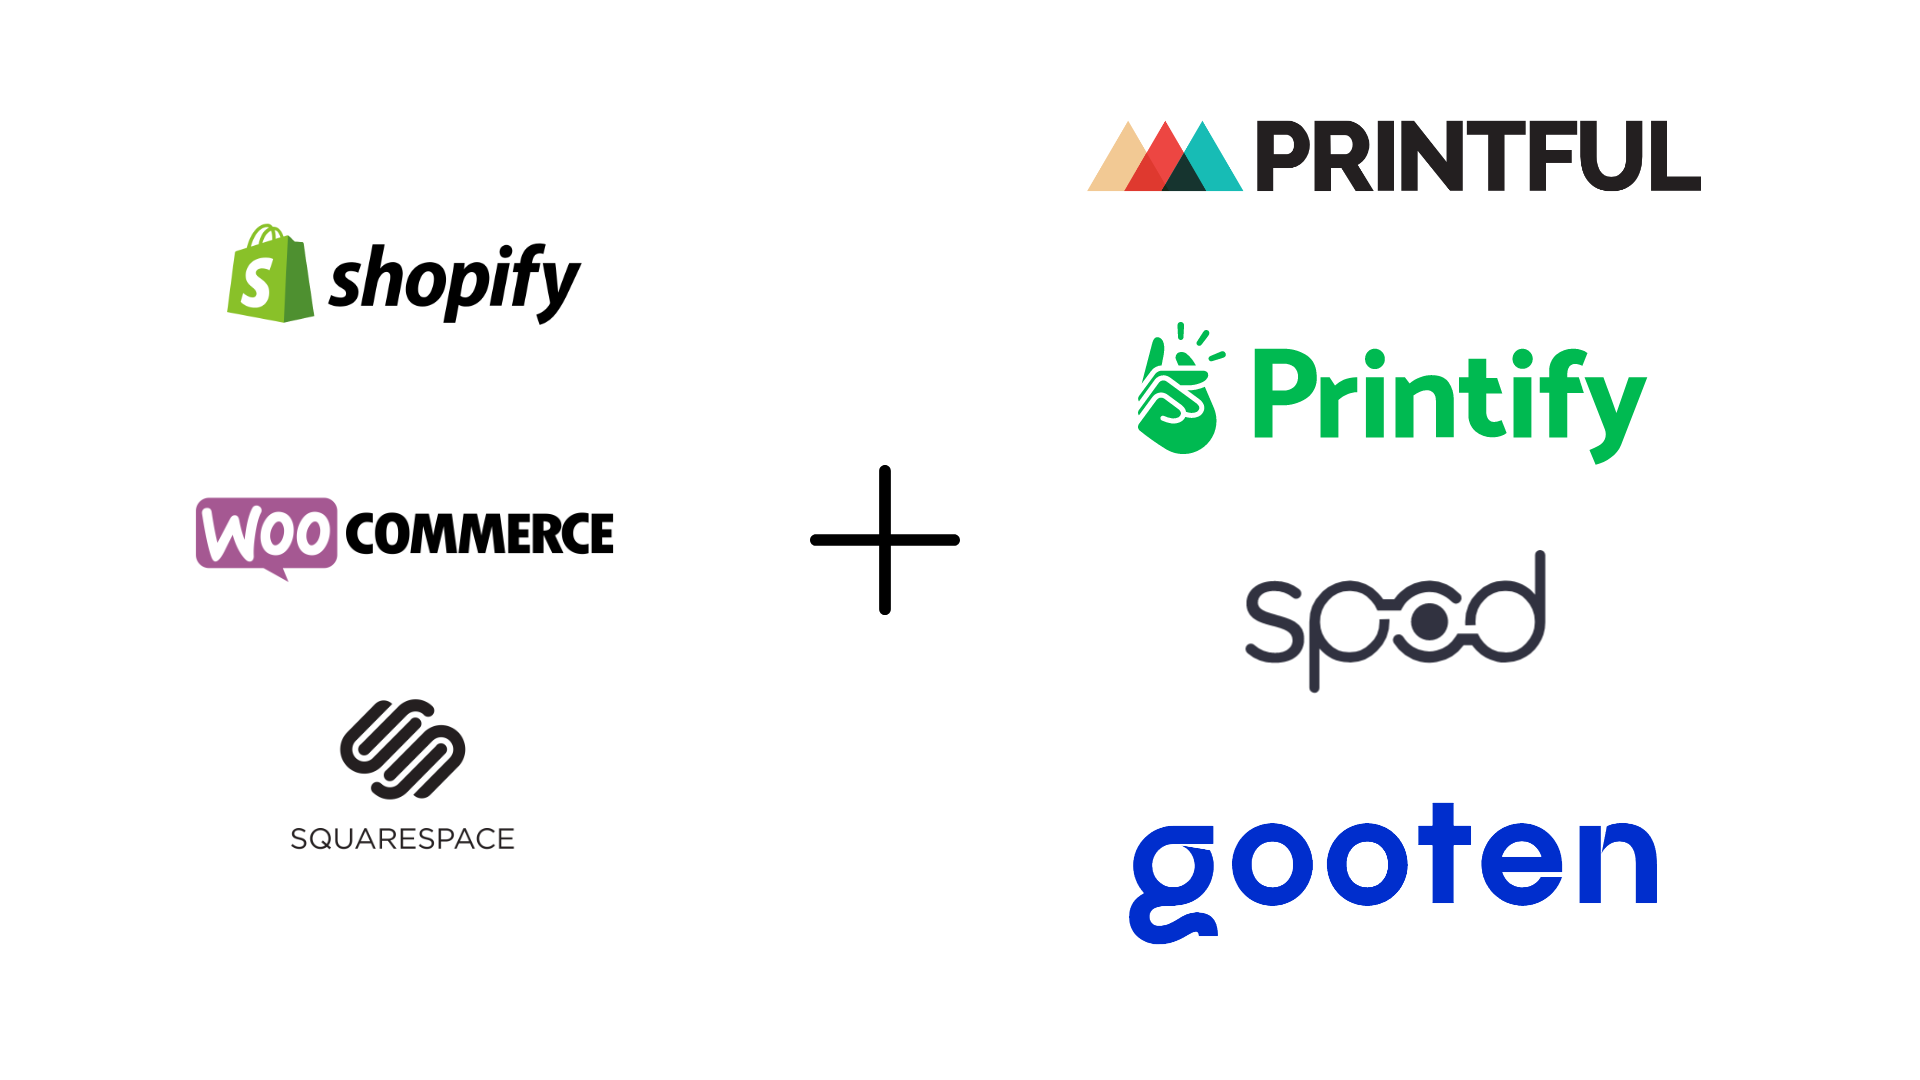 examples of print on demand fulfillment services